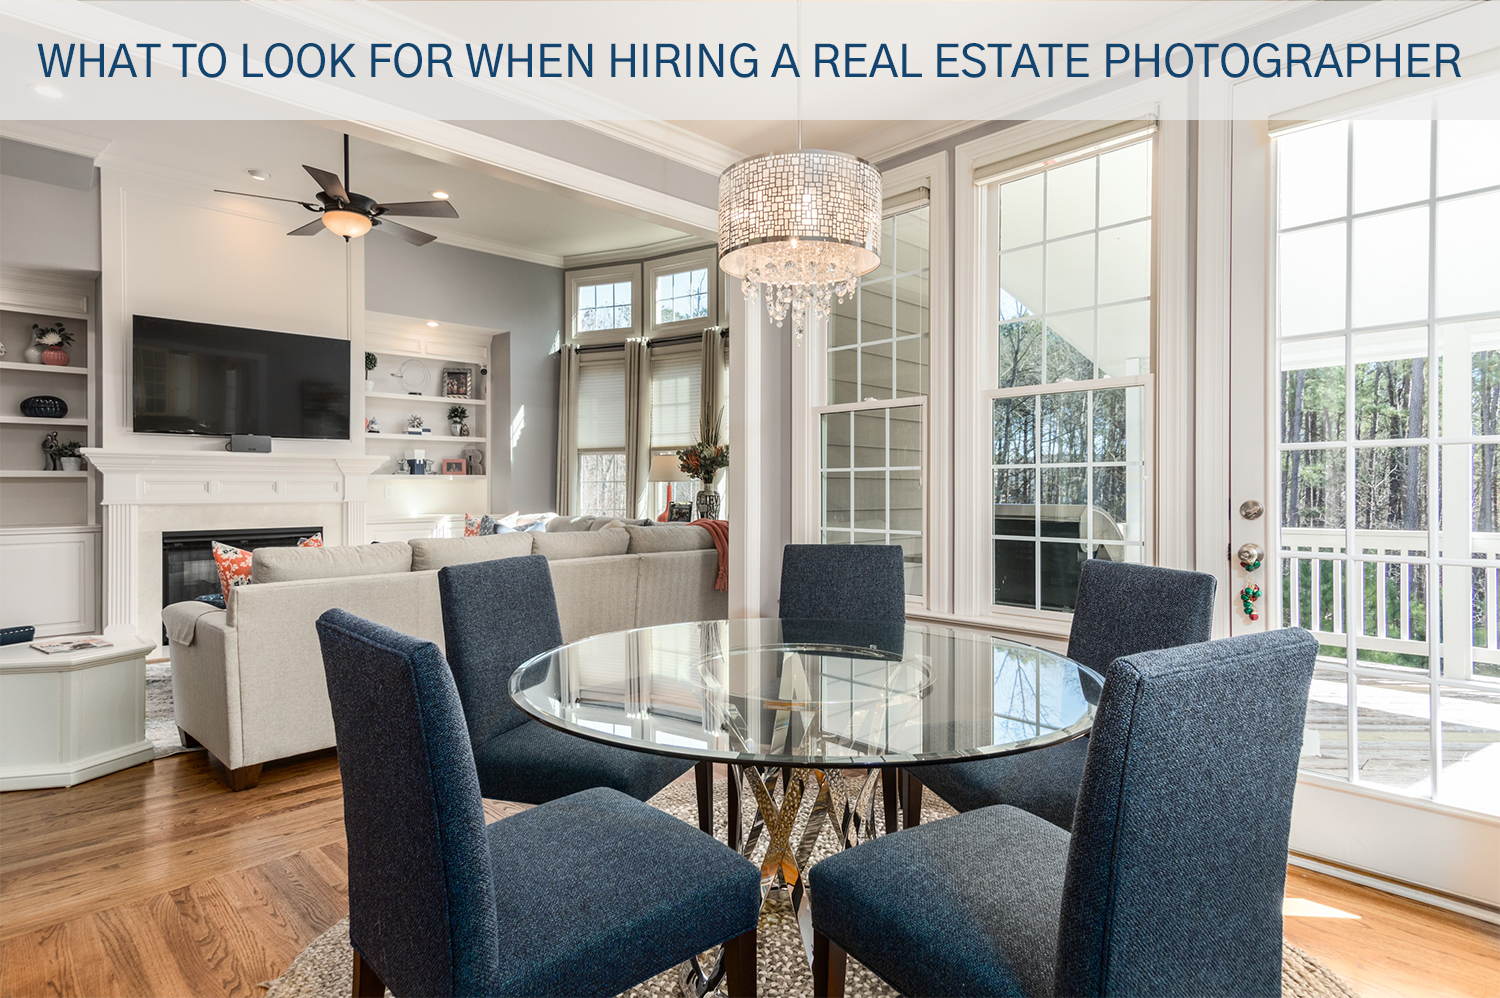 A real estate photo of a round dining table with chairs, and a living room beyond that. Shot taken by a real estate photographer.